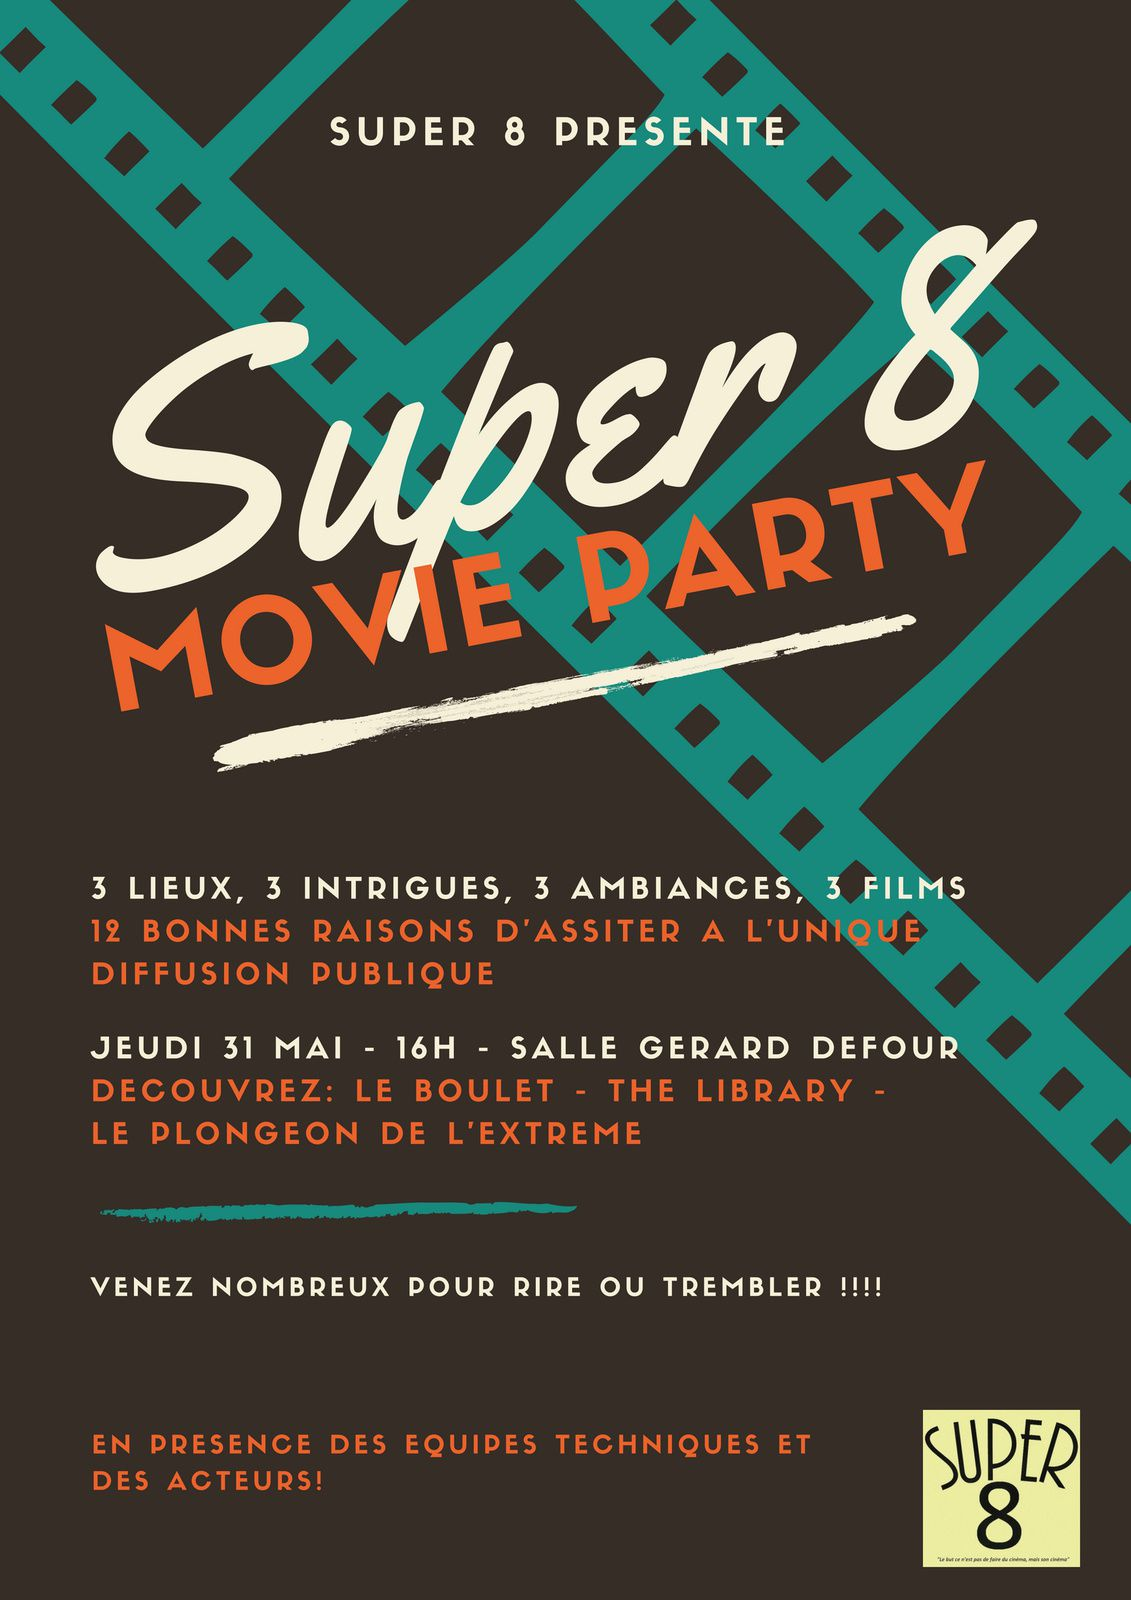 Super 8 movie party !